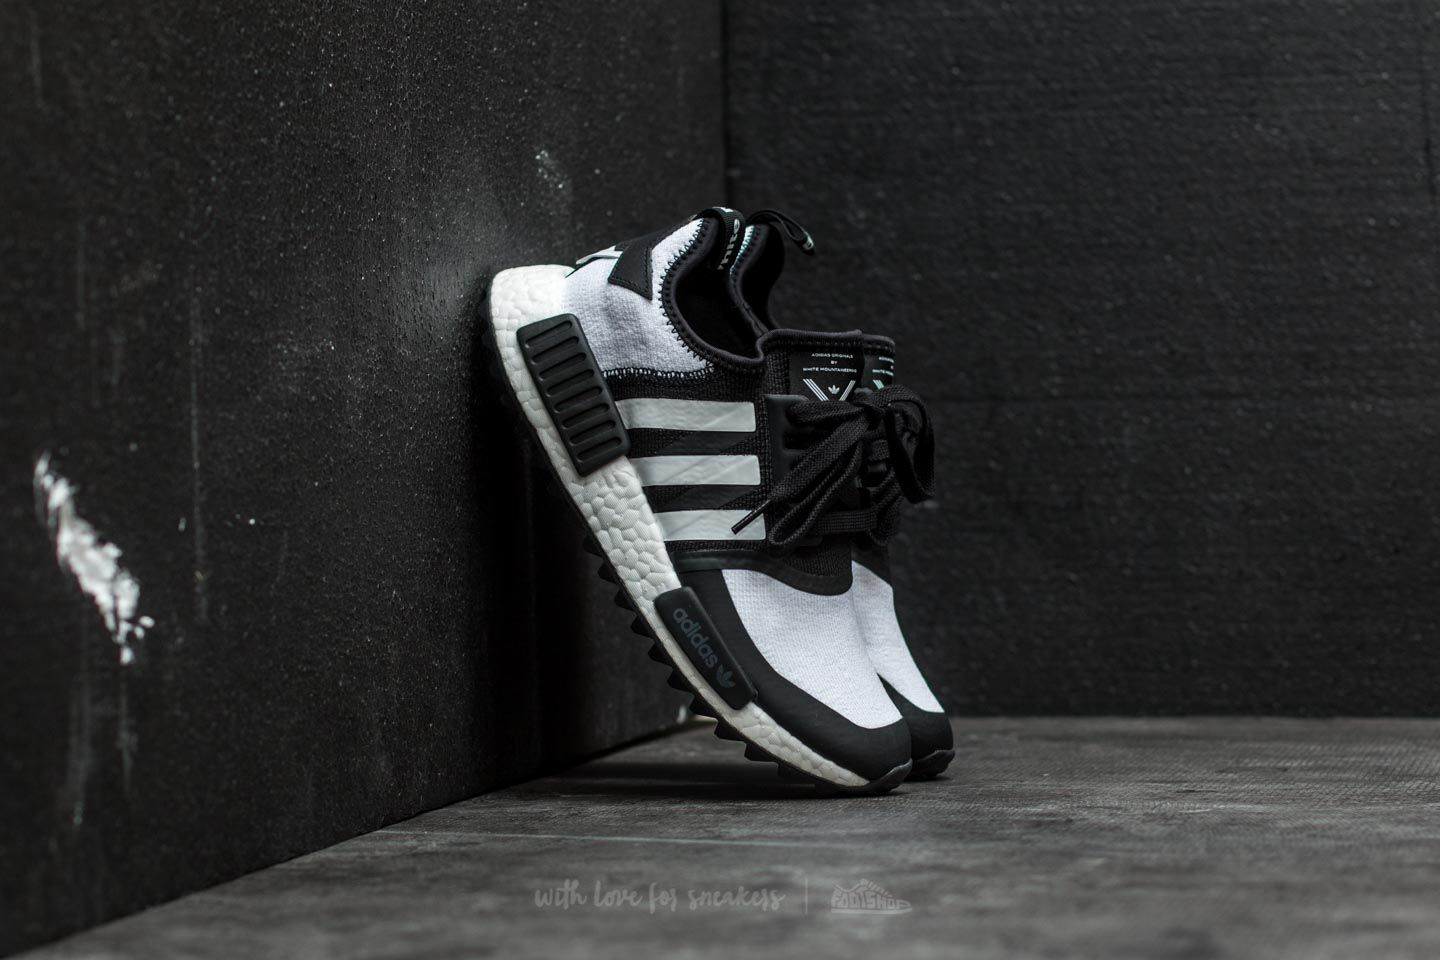 cc680904f1573 adidas x White Mountaineering NMD Trail Primeknit Core Black  Ftw ...